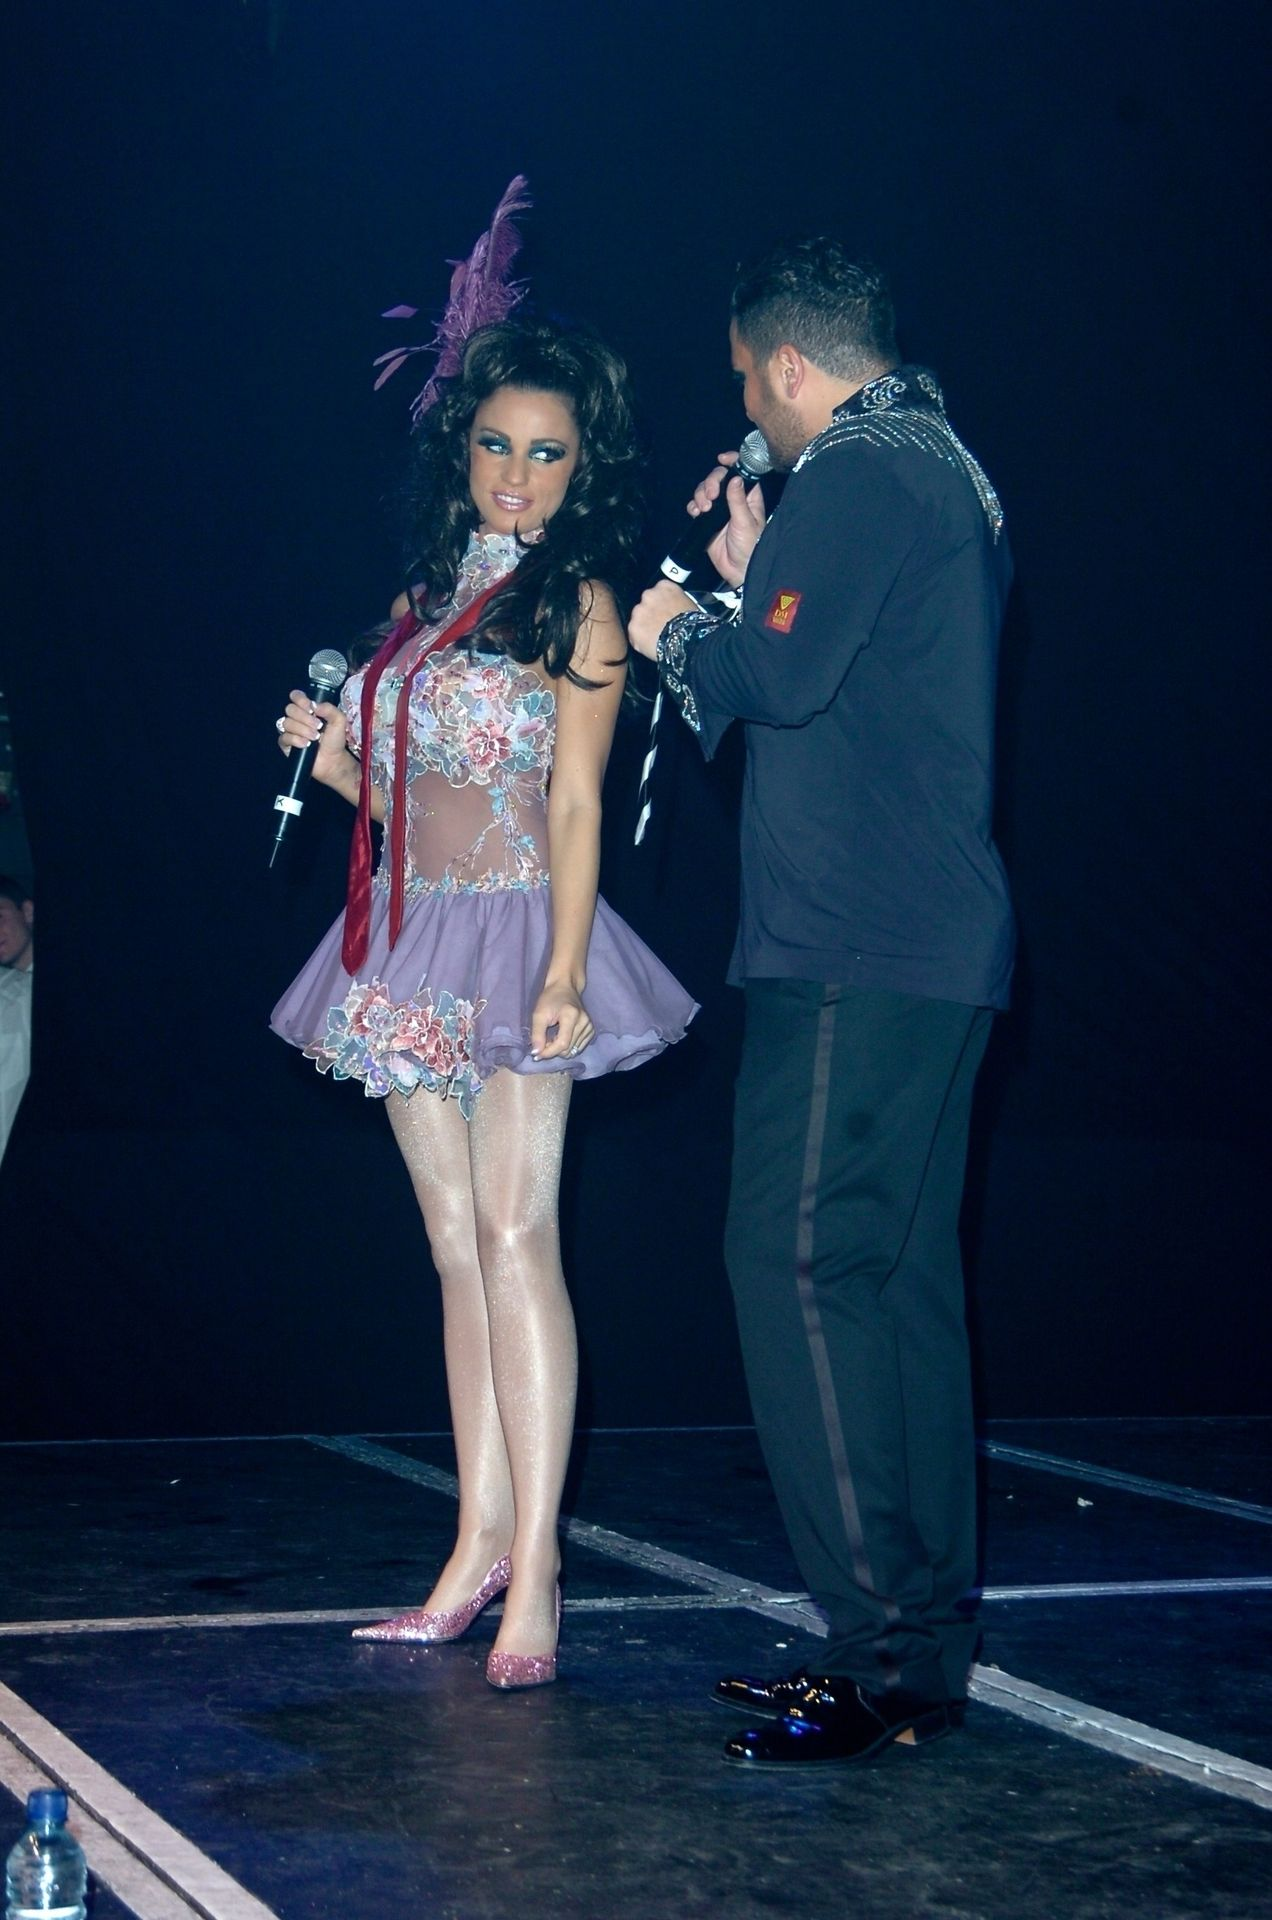 Katie Price & Peter Andre Perform At Gay Astoria In London 0014